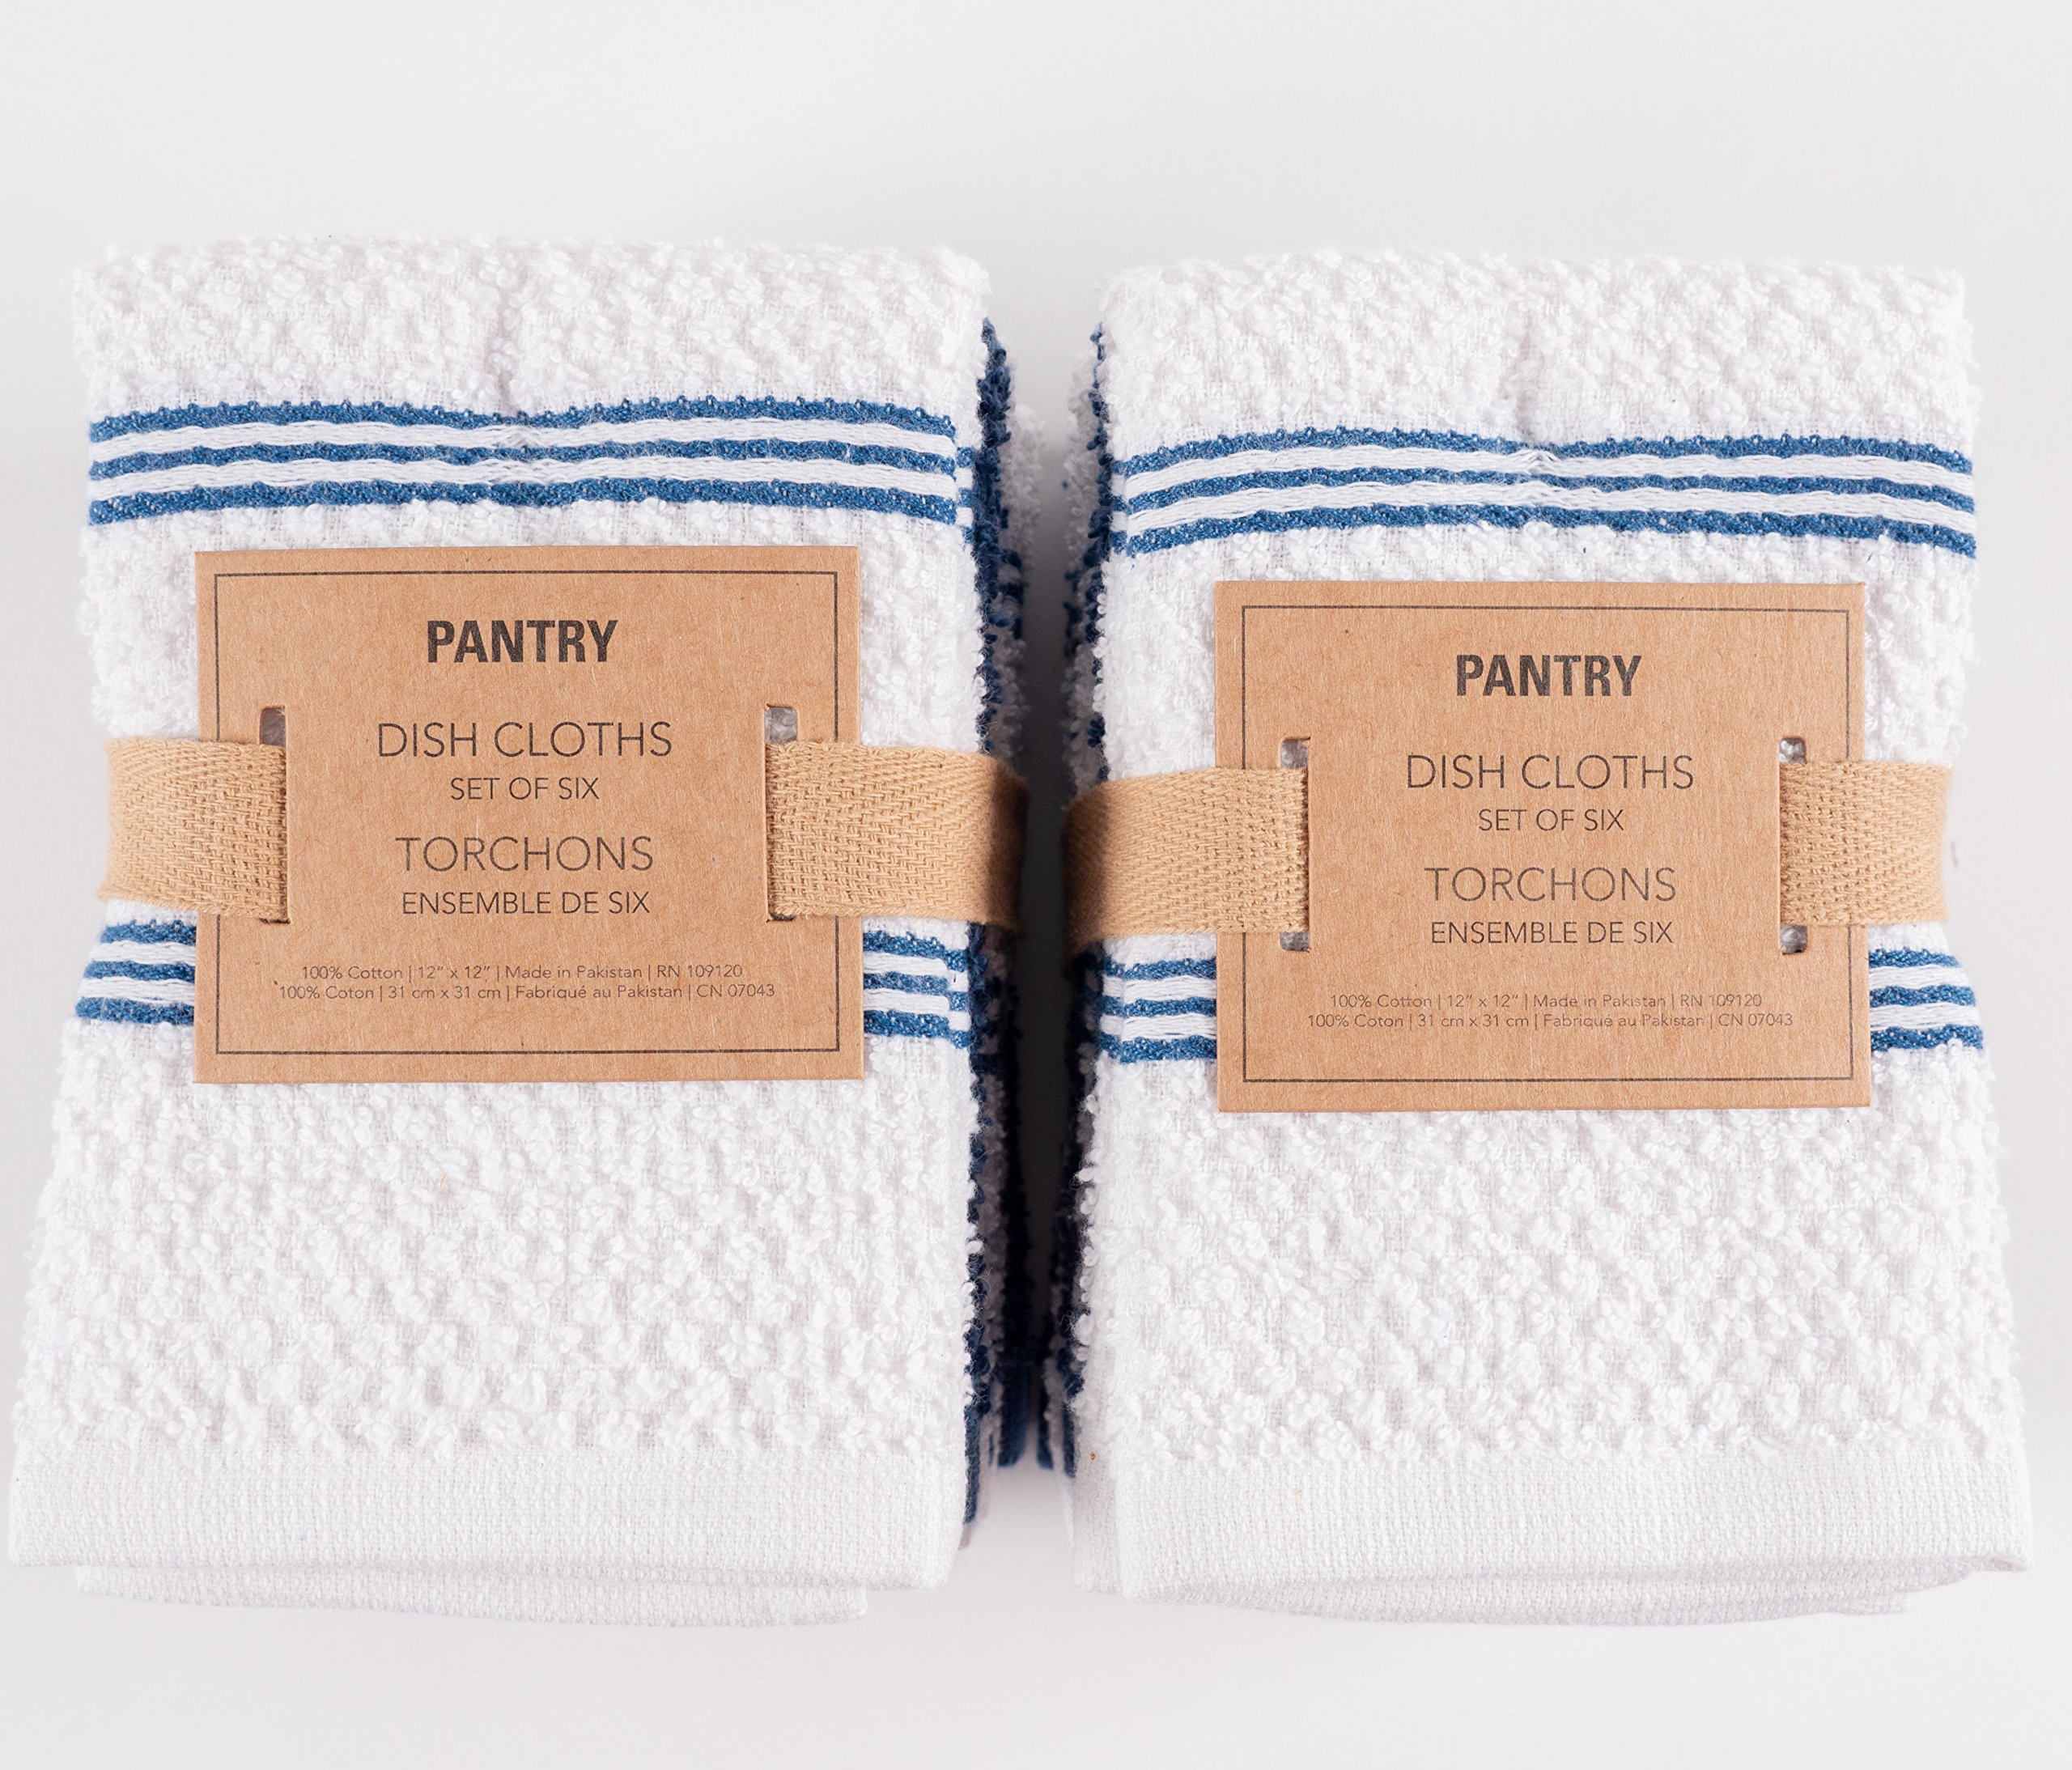 KAF Home Pantry Piedmont Dish Cloths (Set of 12, 12x12 inches), 100% Cotton, Ultra Absorbent Terry Towels - Paris Blue by KAF Home (Image #4)